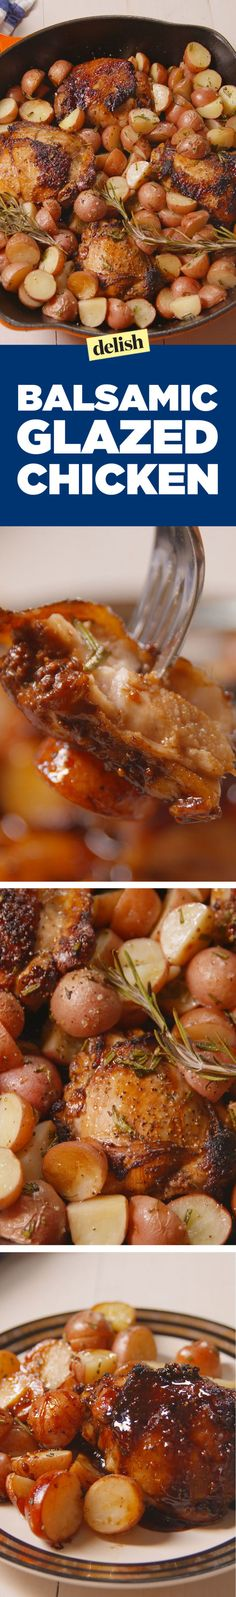 http://www.delish.com/cooking/recipe-ideas/recipes/a49138/balsamic-glazed-chicken/